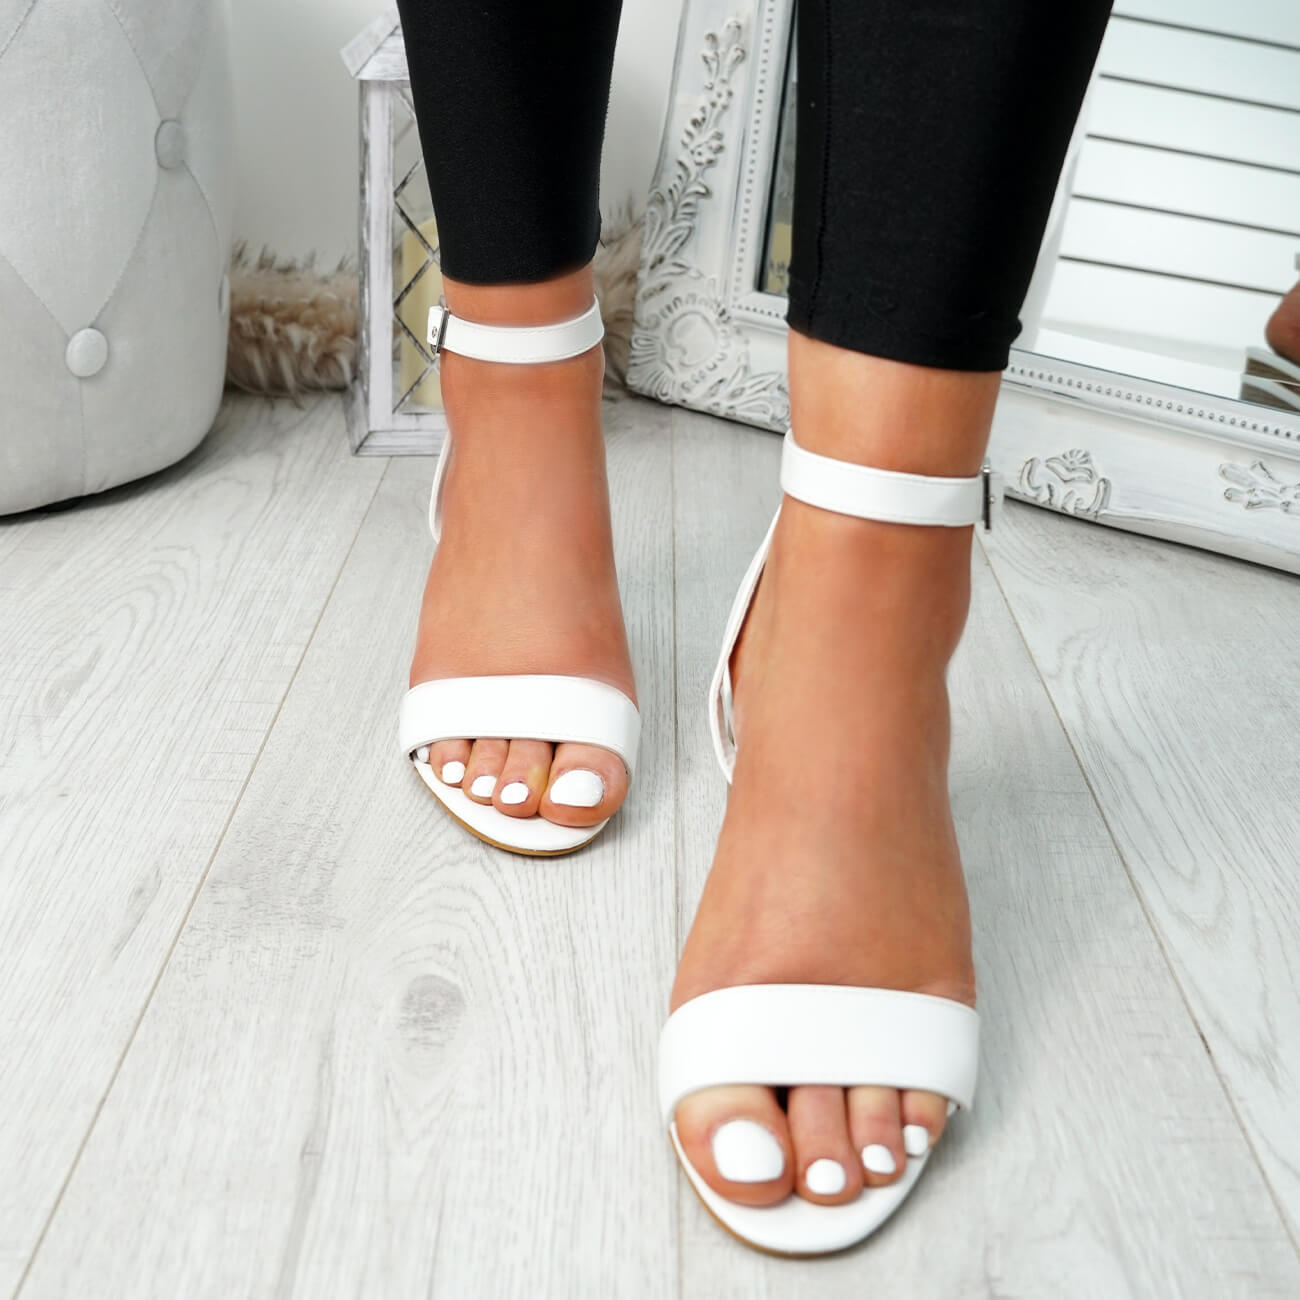 WOMENS-LADIES-PEEP-TOE-HIGH-BLOCK-HEEL-SANDALS-ANKLE-STRAP-PARTY-SHOES-SIZE thumbnail 17